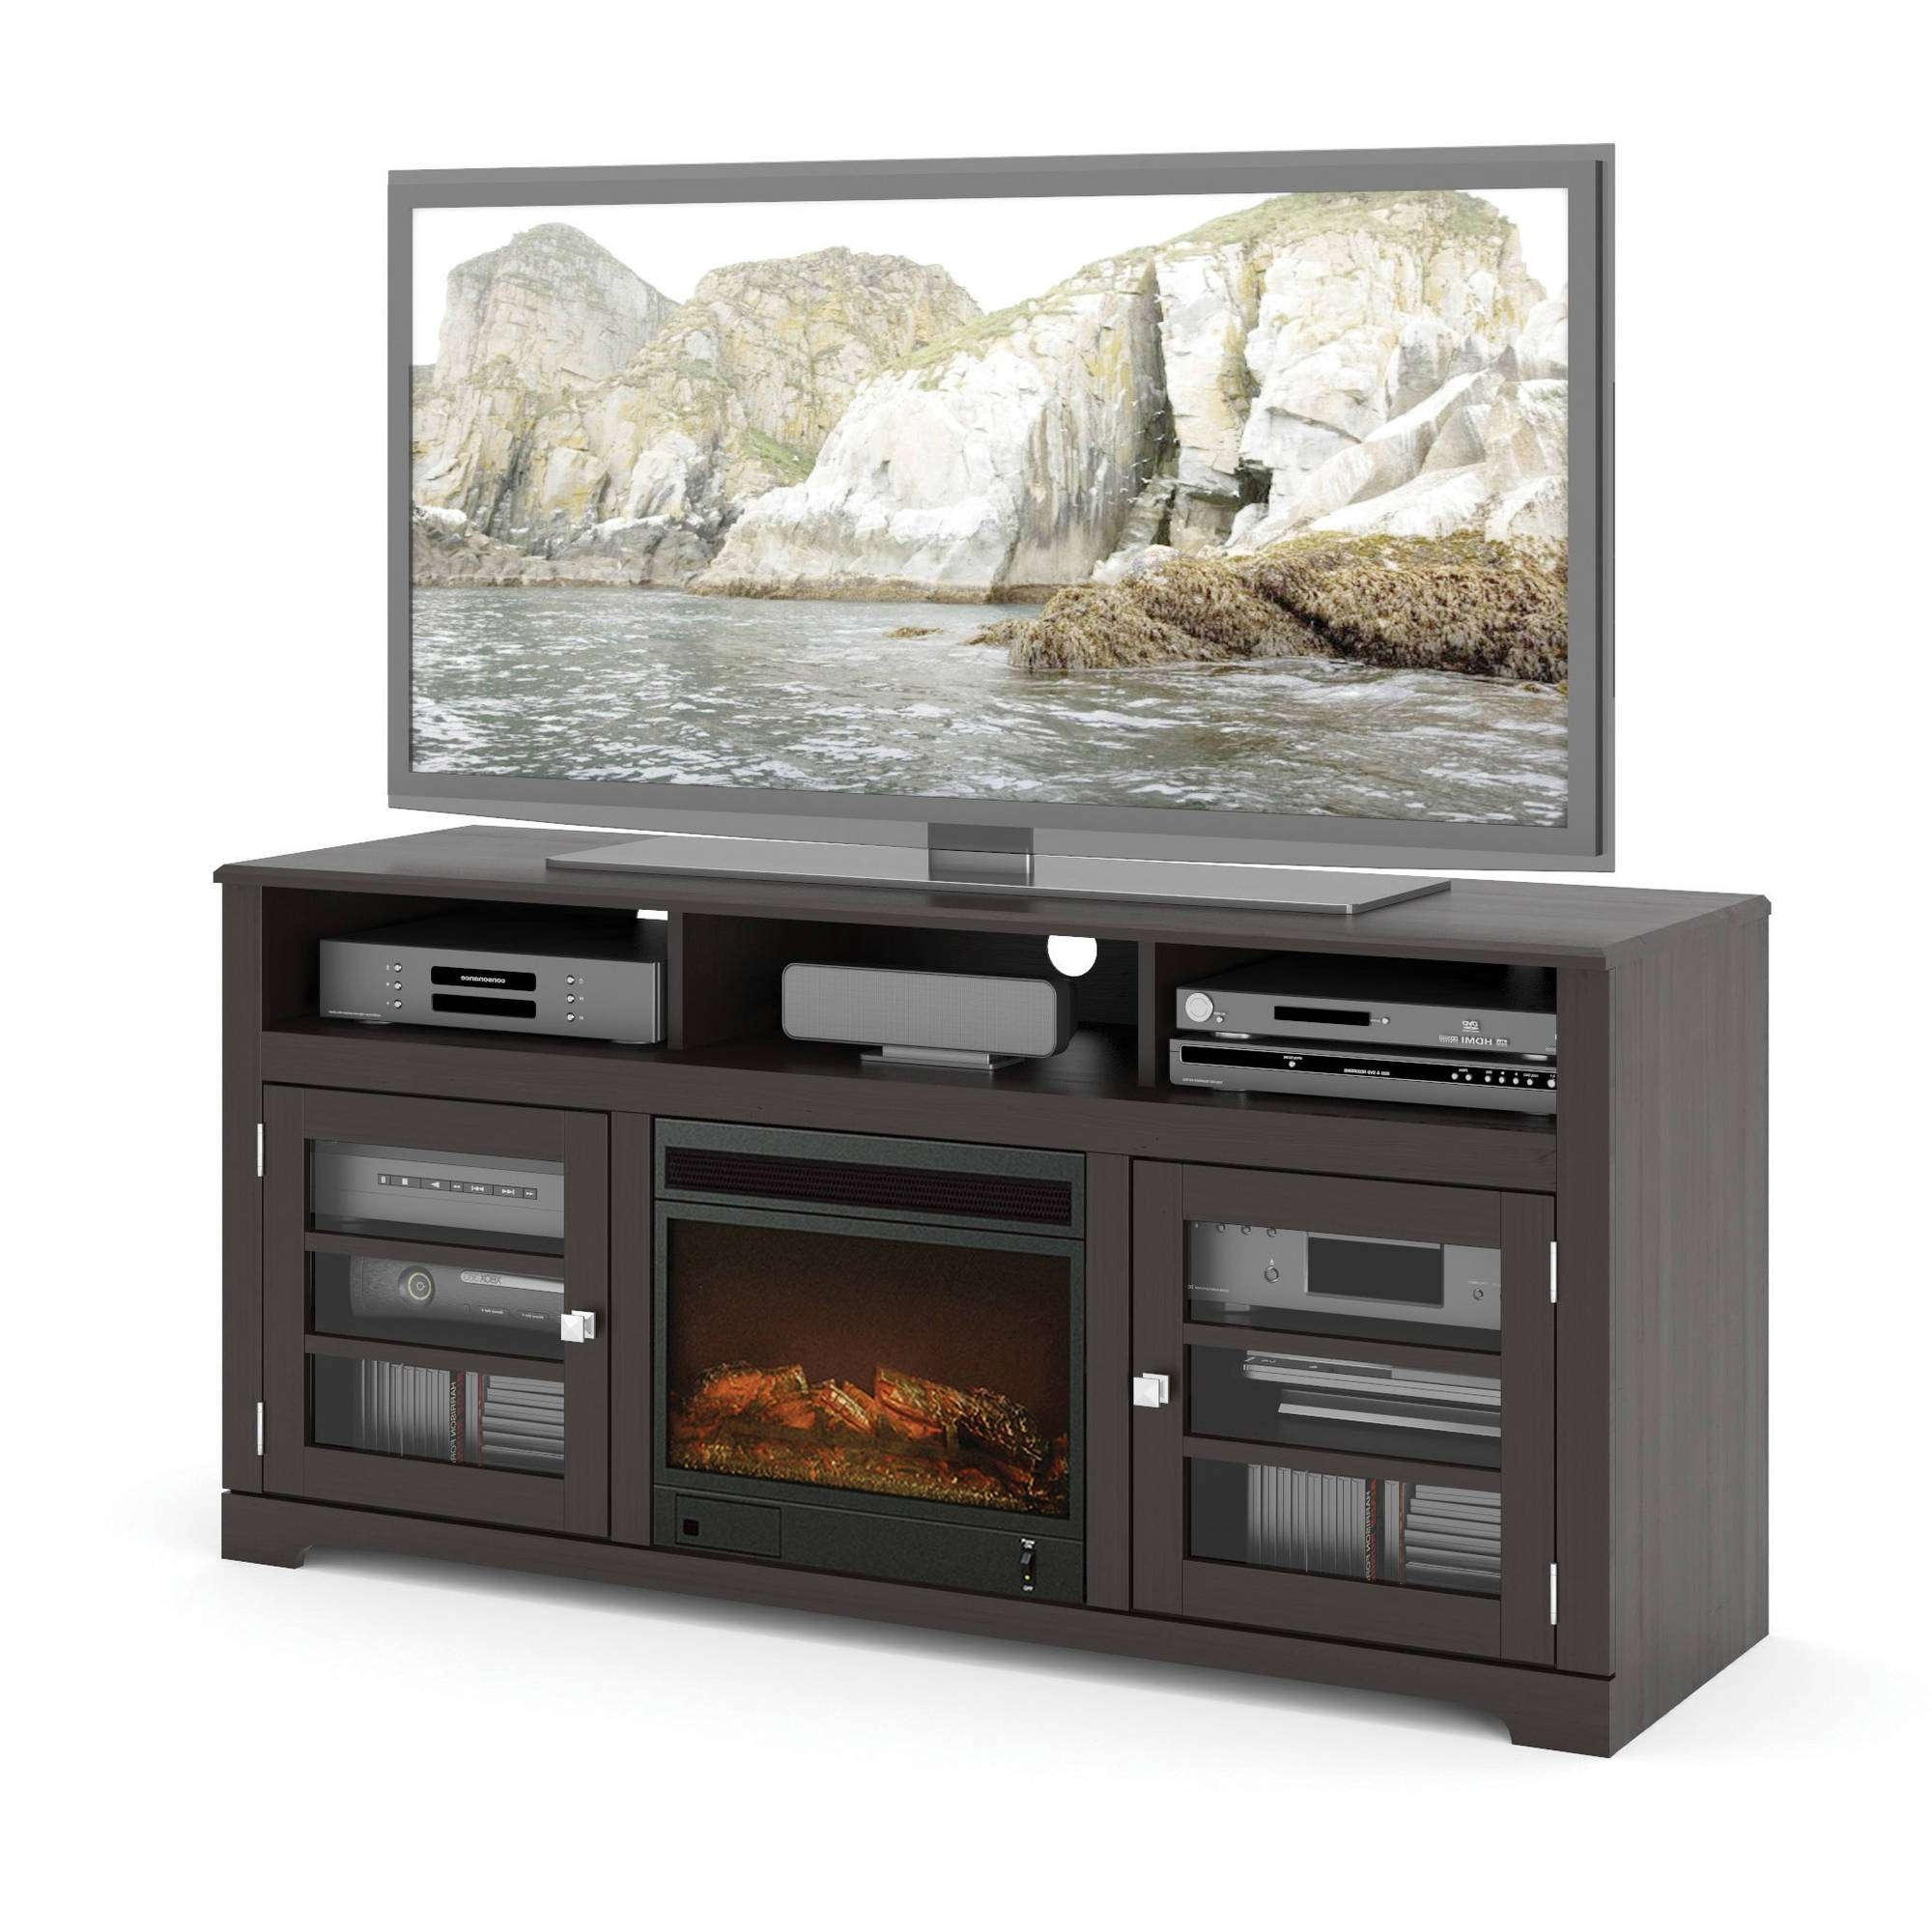 Fireplace Tv Stands – Walmart Intended For Rustic 60 Inch Tv Stands (View 3 of 15)